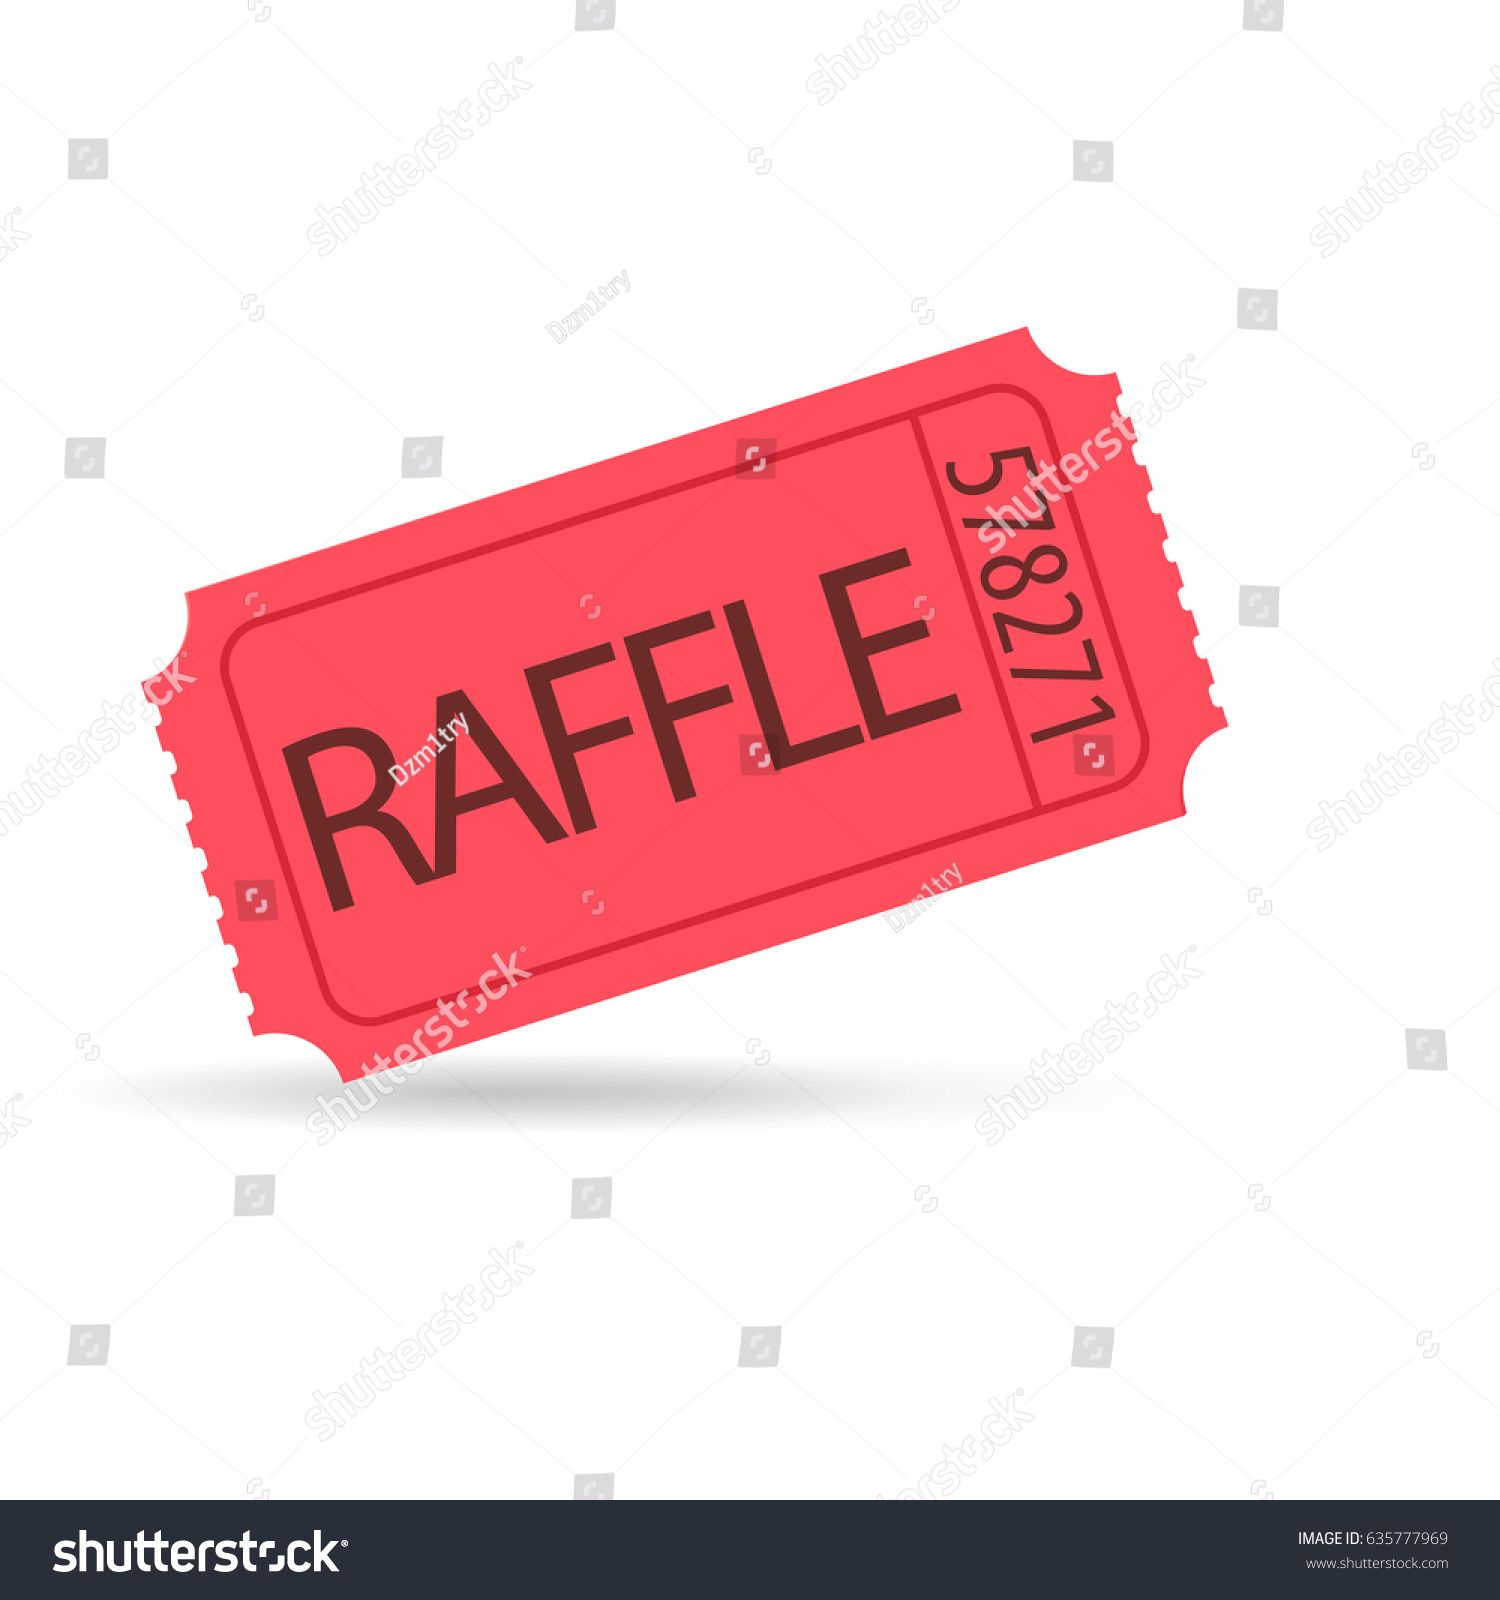 Red raffle ticket icon. Vector image isolated on white.